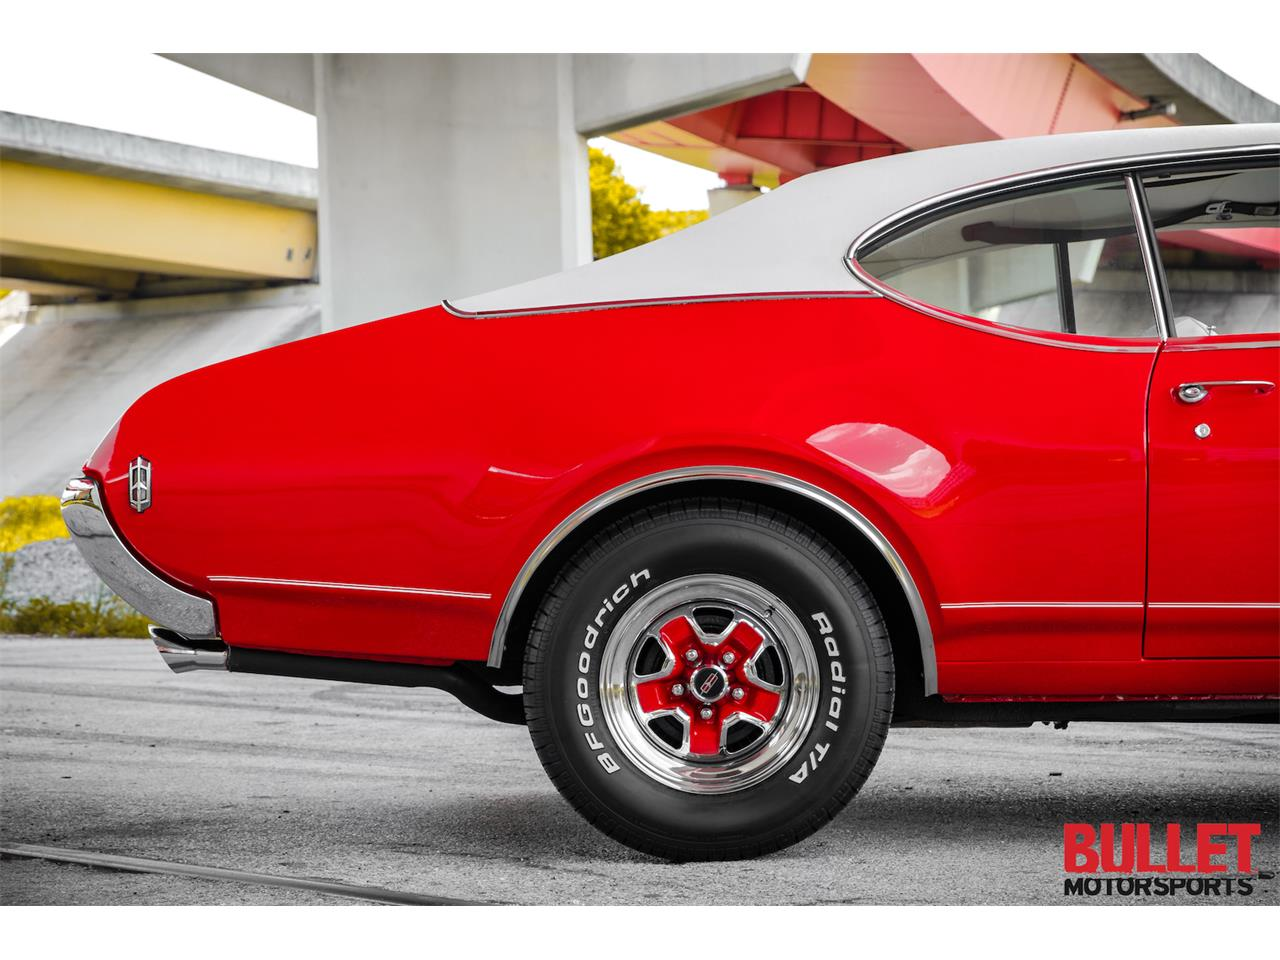 Large Picture of 1968 Cutlass Supreme located in Florida - $30,000.00 Offered by Bullet Motorsports Inc - PZS9